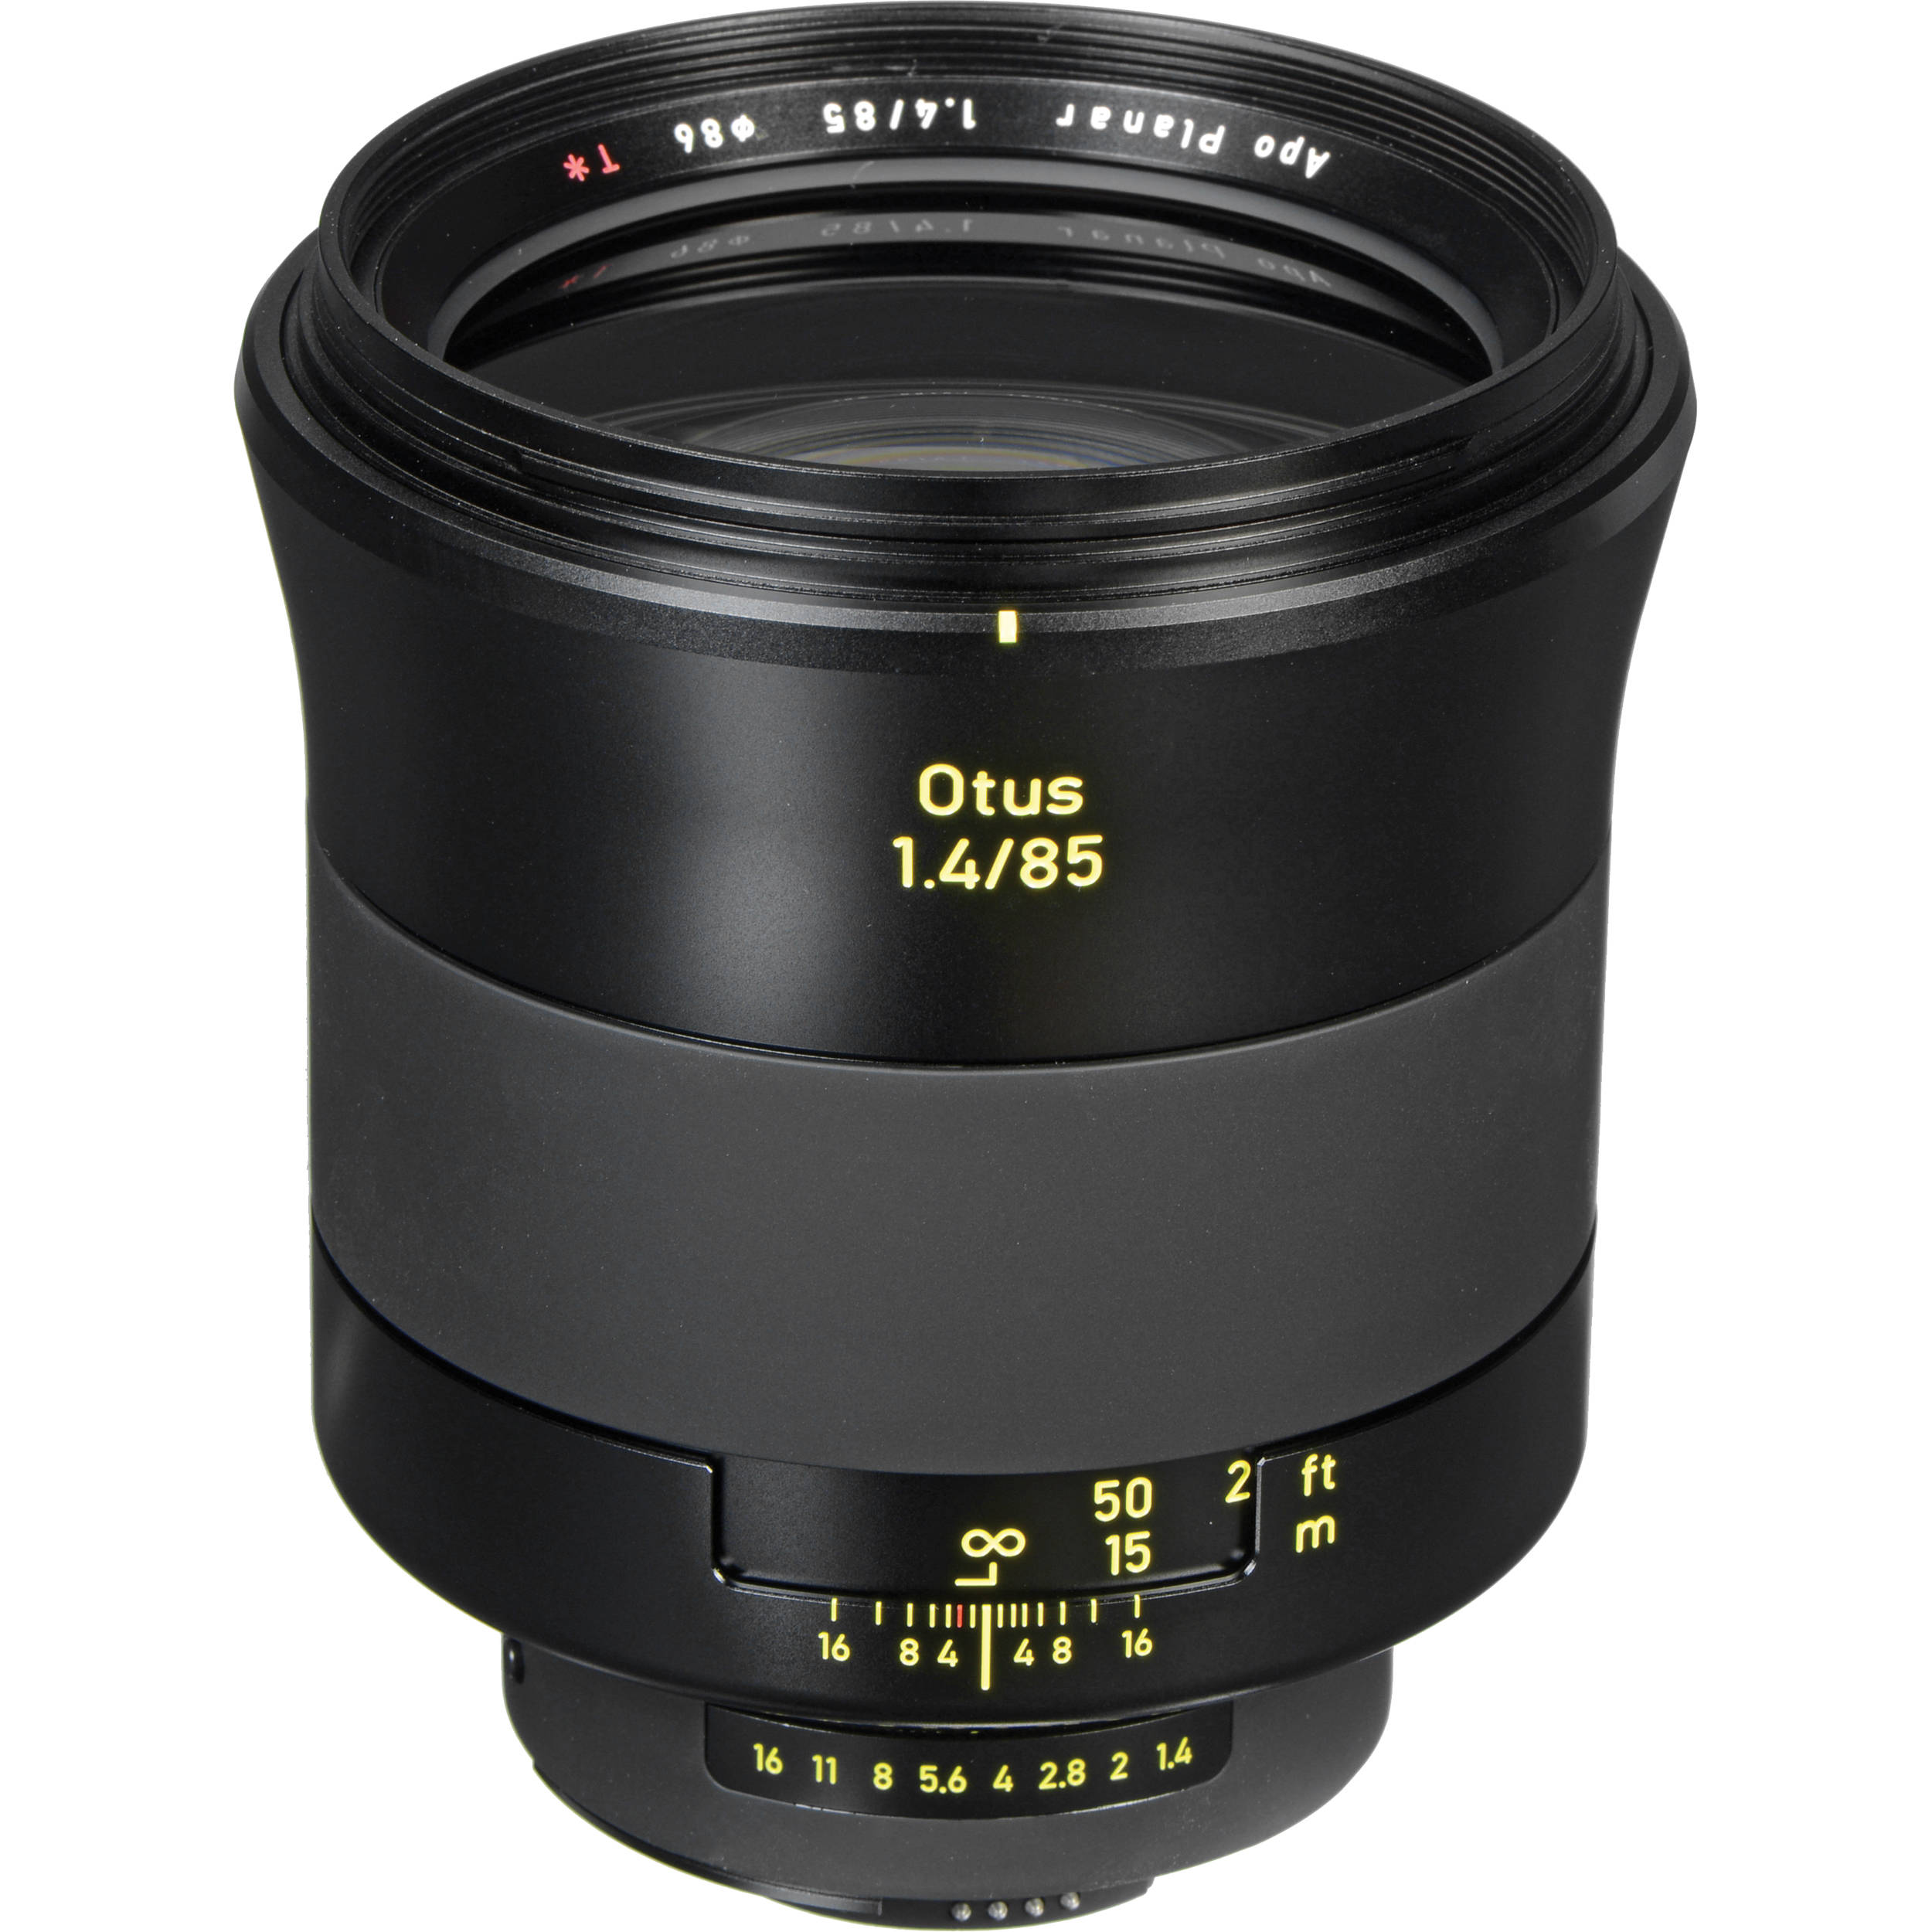 ZEISS Otus 85mm f/1 4 ZF 2 Lens for Nikon F